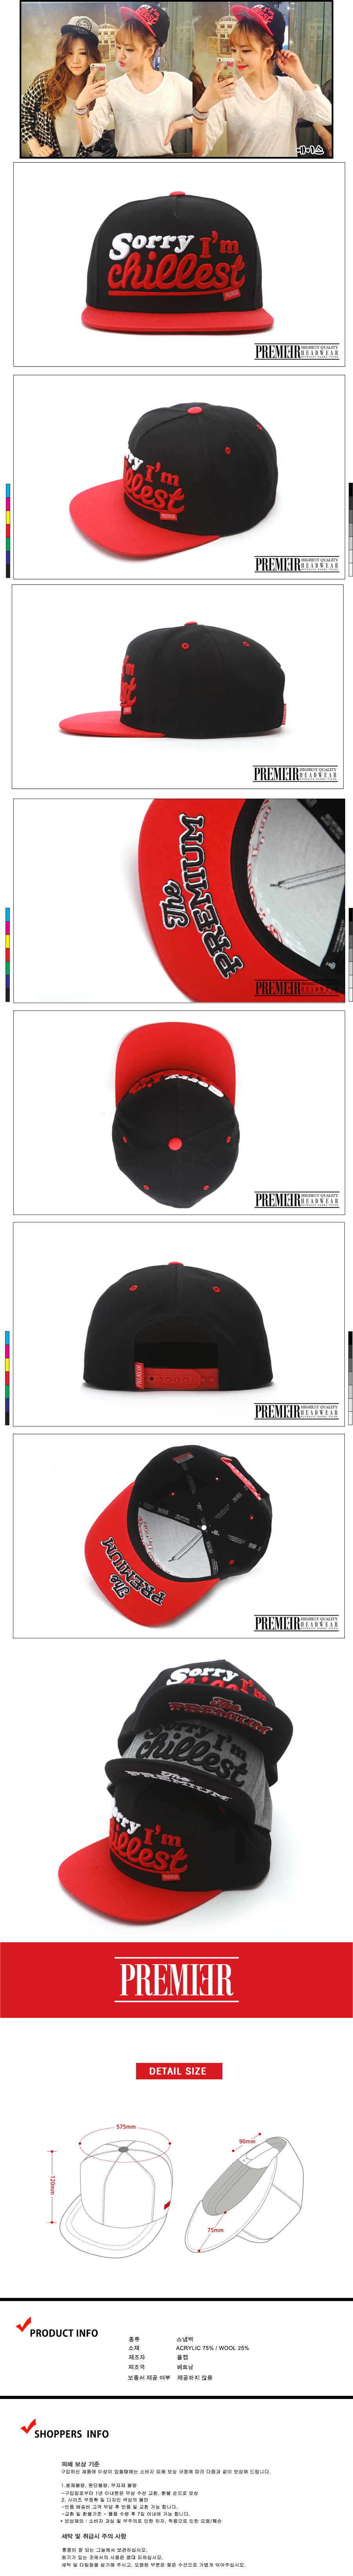 [ PREMIER ] [Premier] Snapback Chillest Black/Red